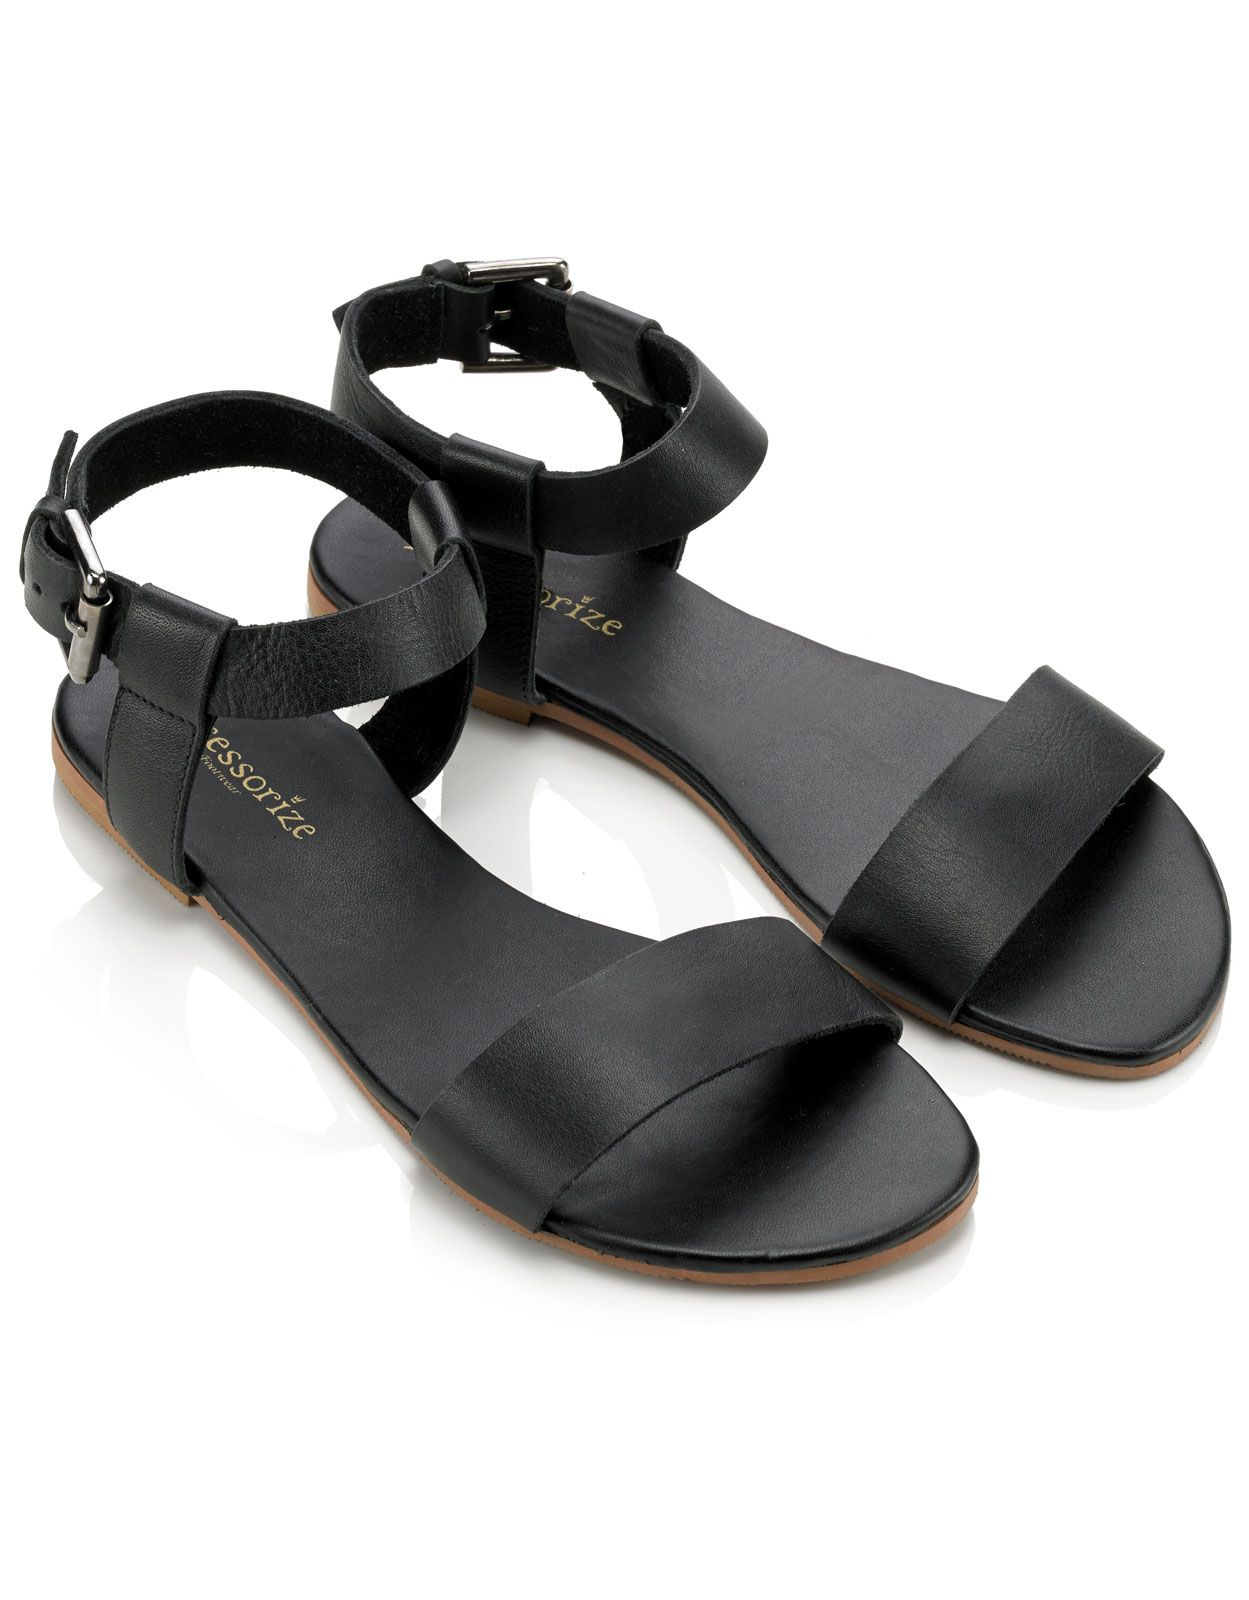 Black sandals holiday - Leather City Sandals